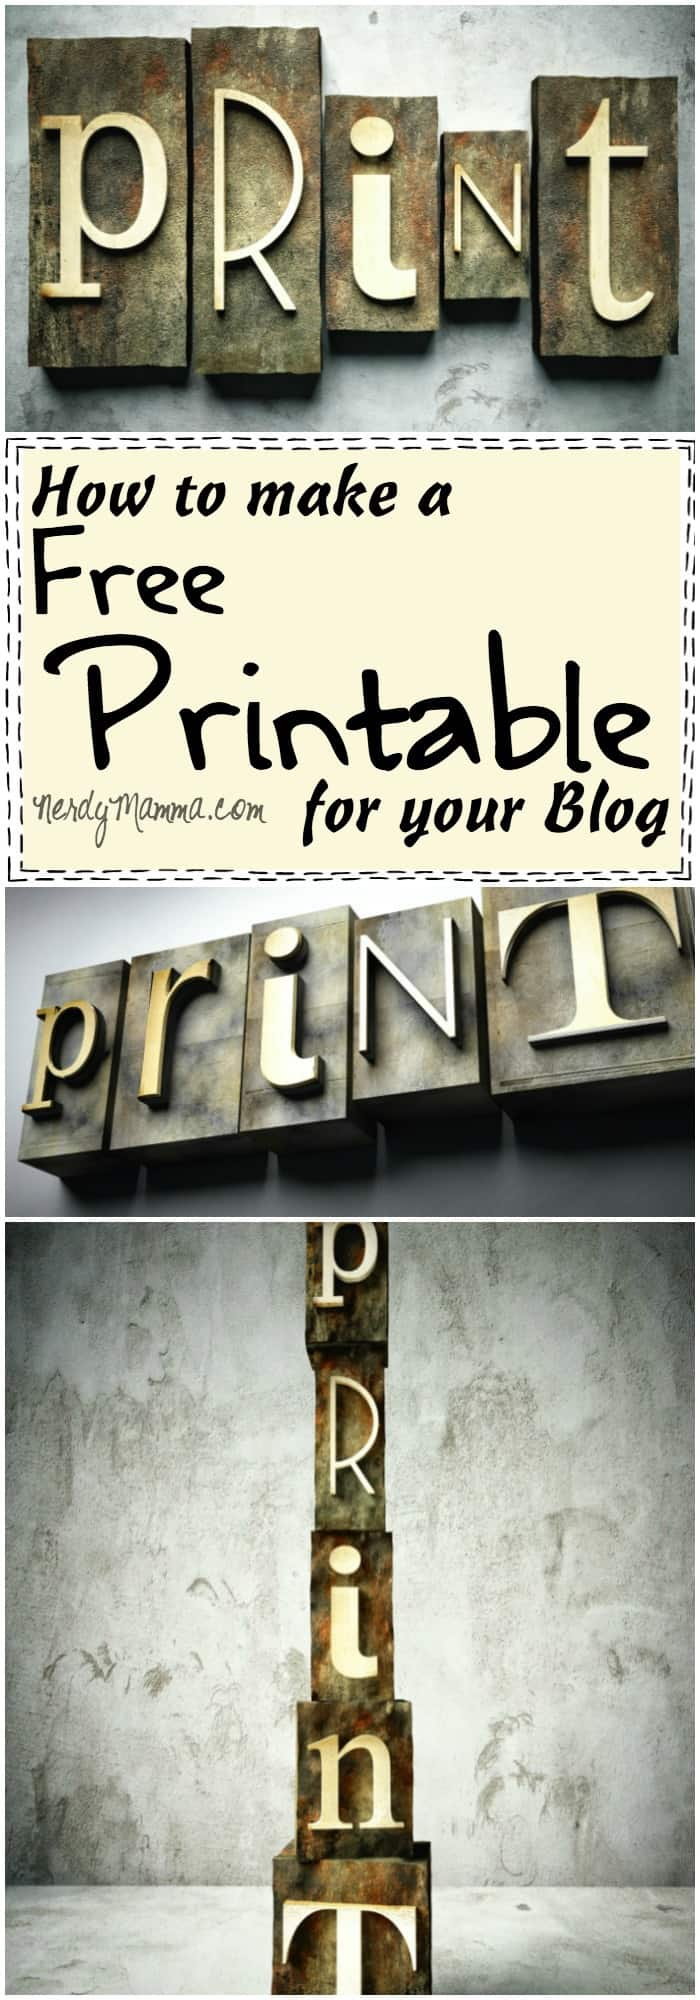 how to make a printable for your blog nerdy mamma such an easy tutorial for making a printable for your blog i love it